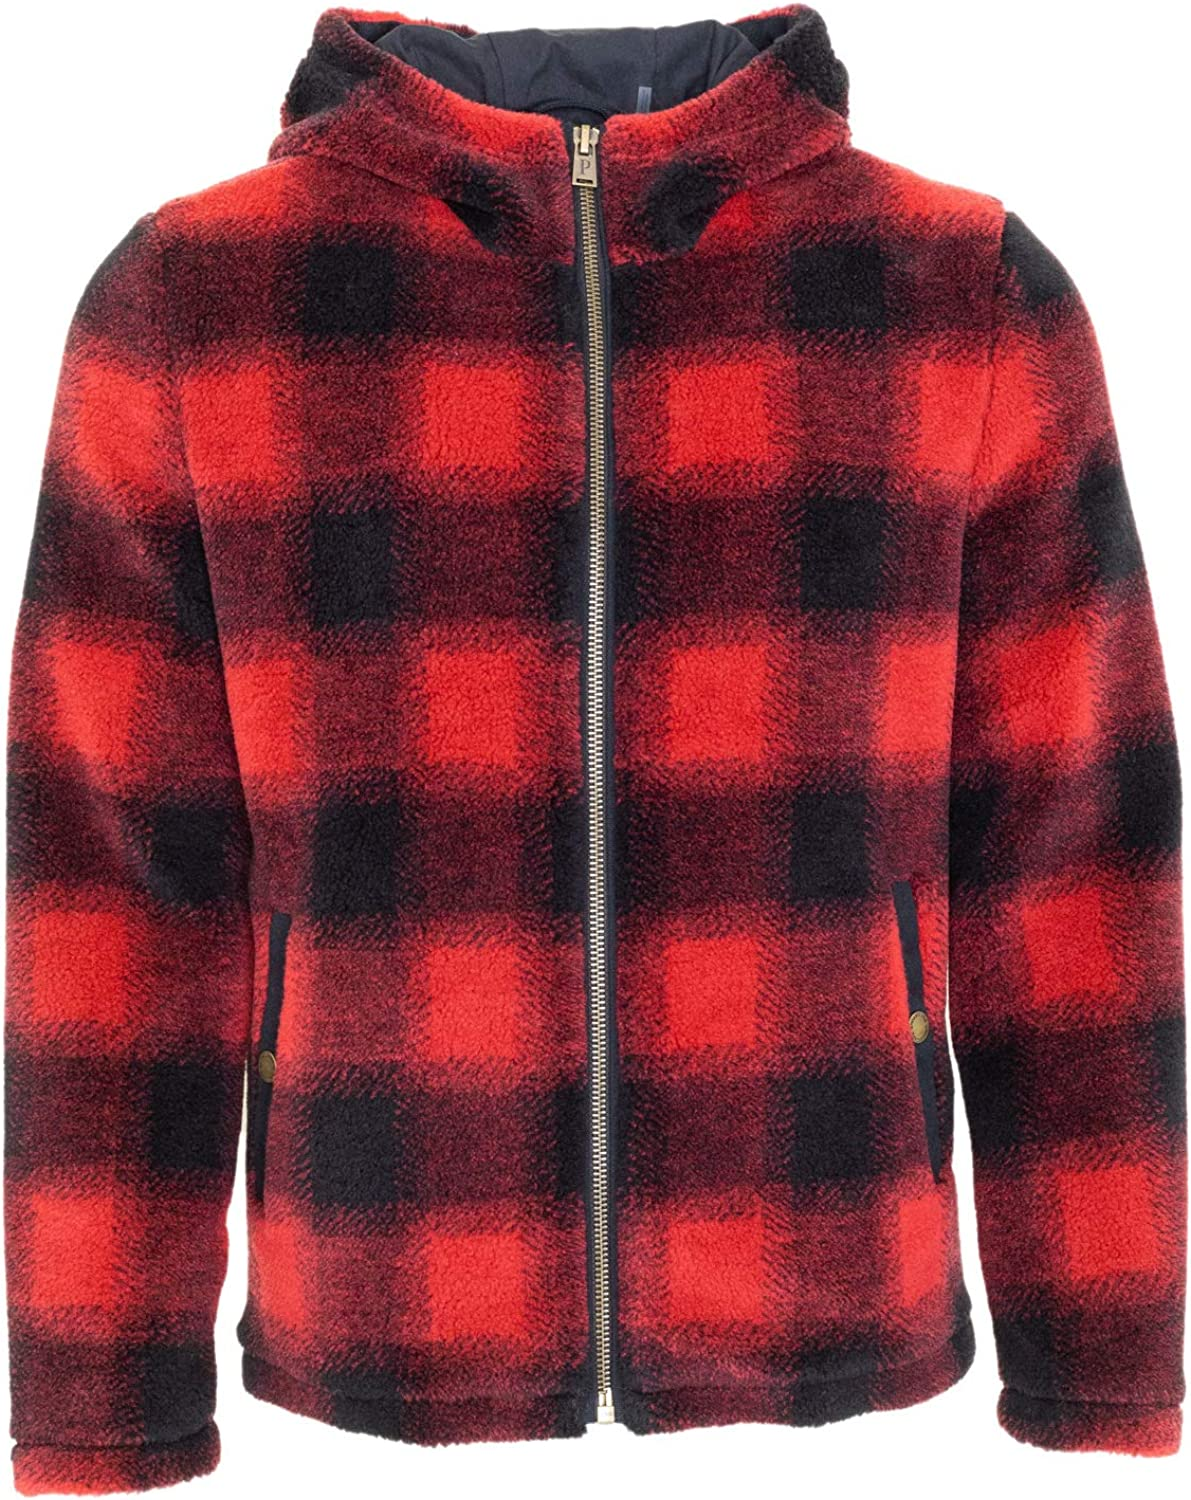 Pendleton Deschutes Hooded Sherpa with Big Sky Canvas w/DWR